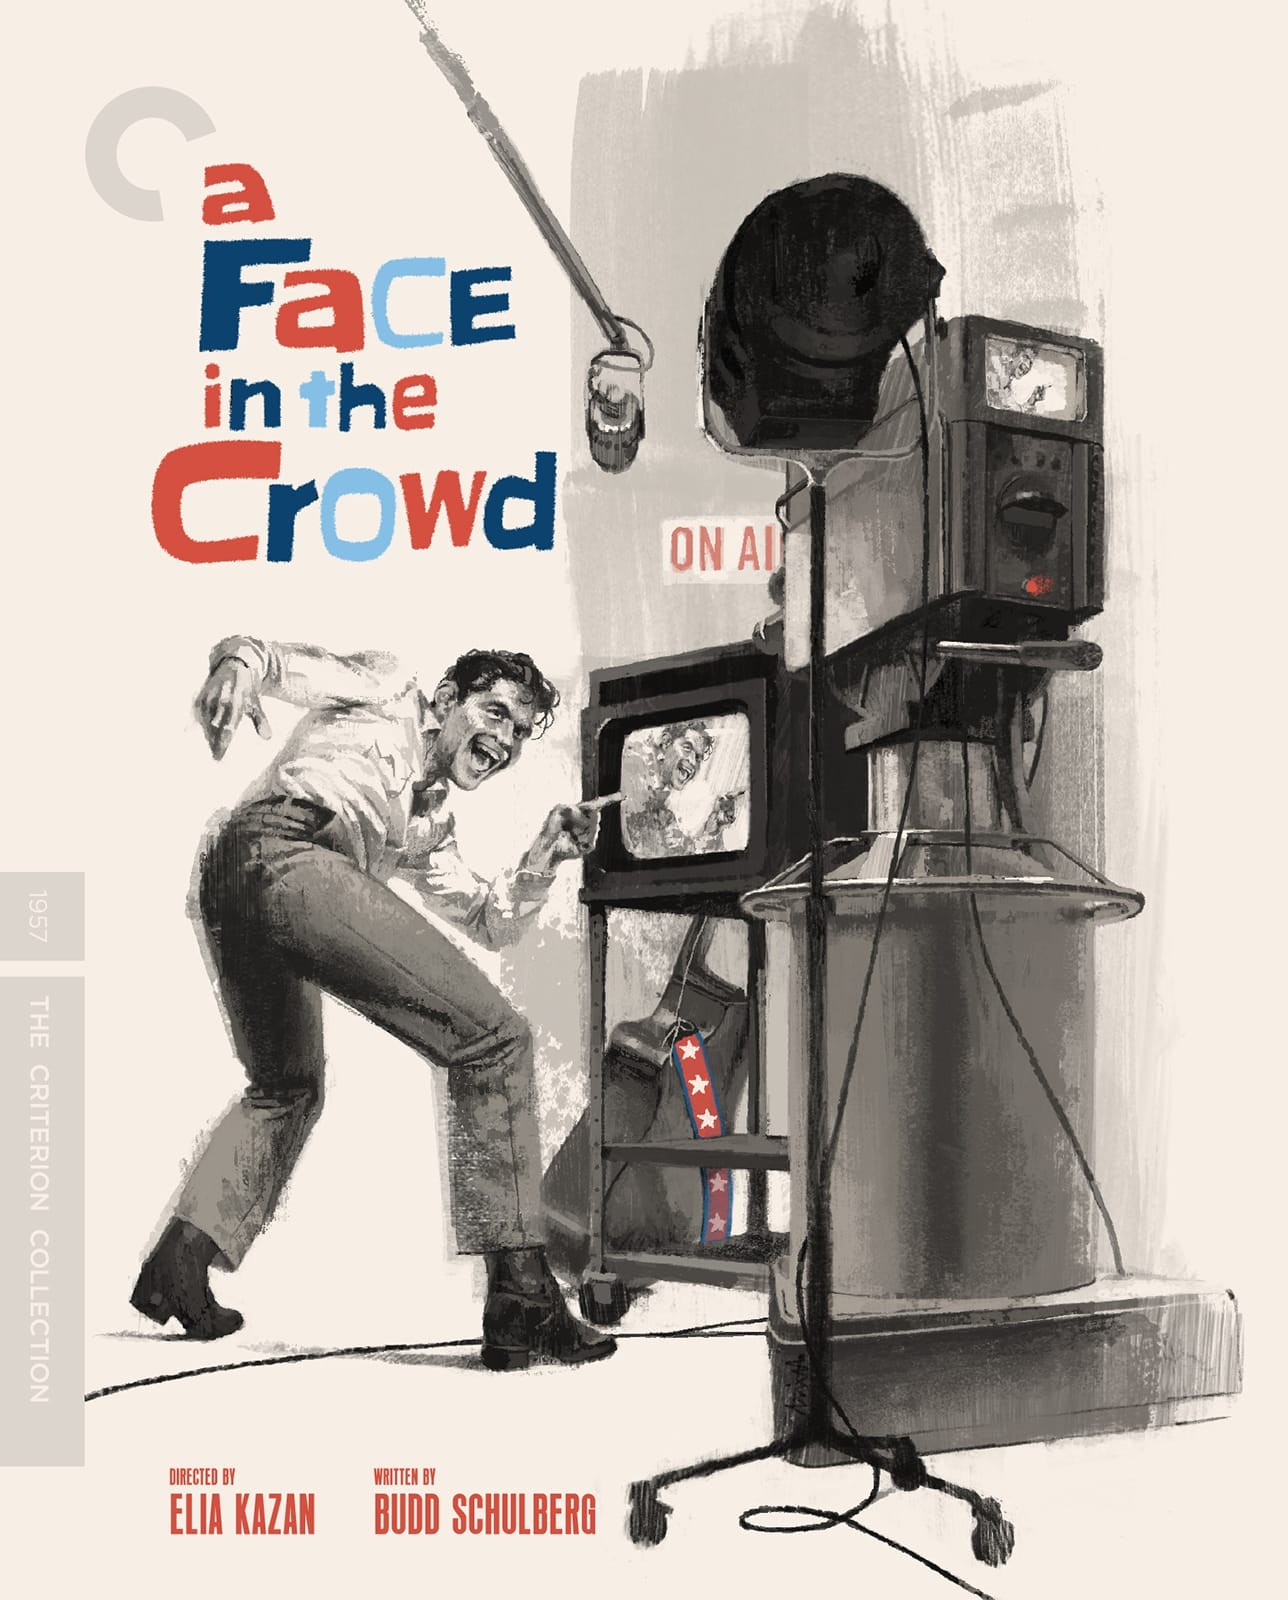 Blu-ray Review: Elia Kazan's A Face in the Crowd on the Criterion